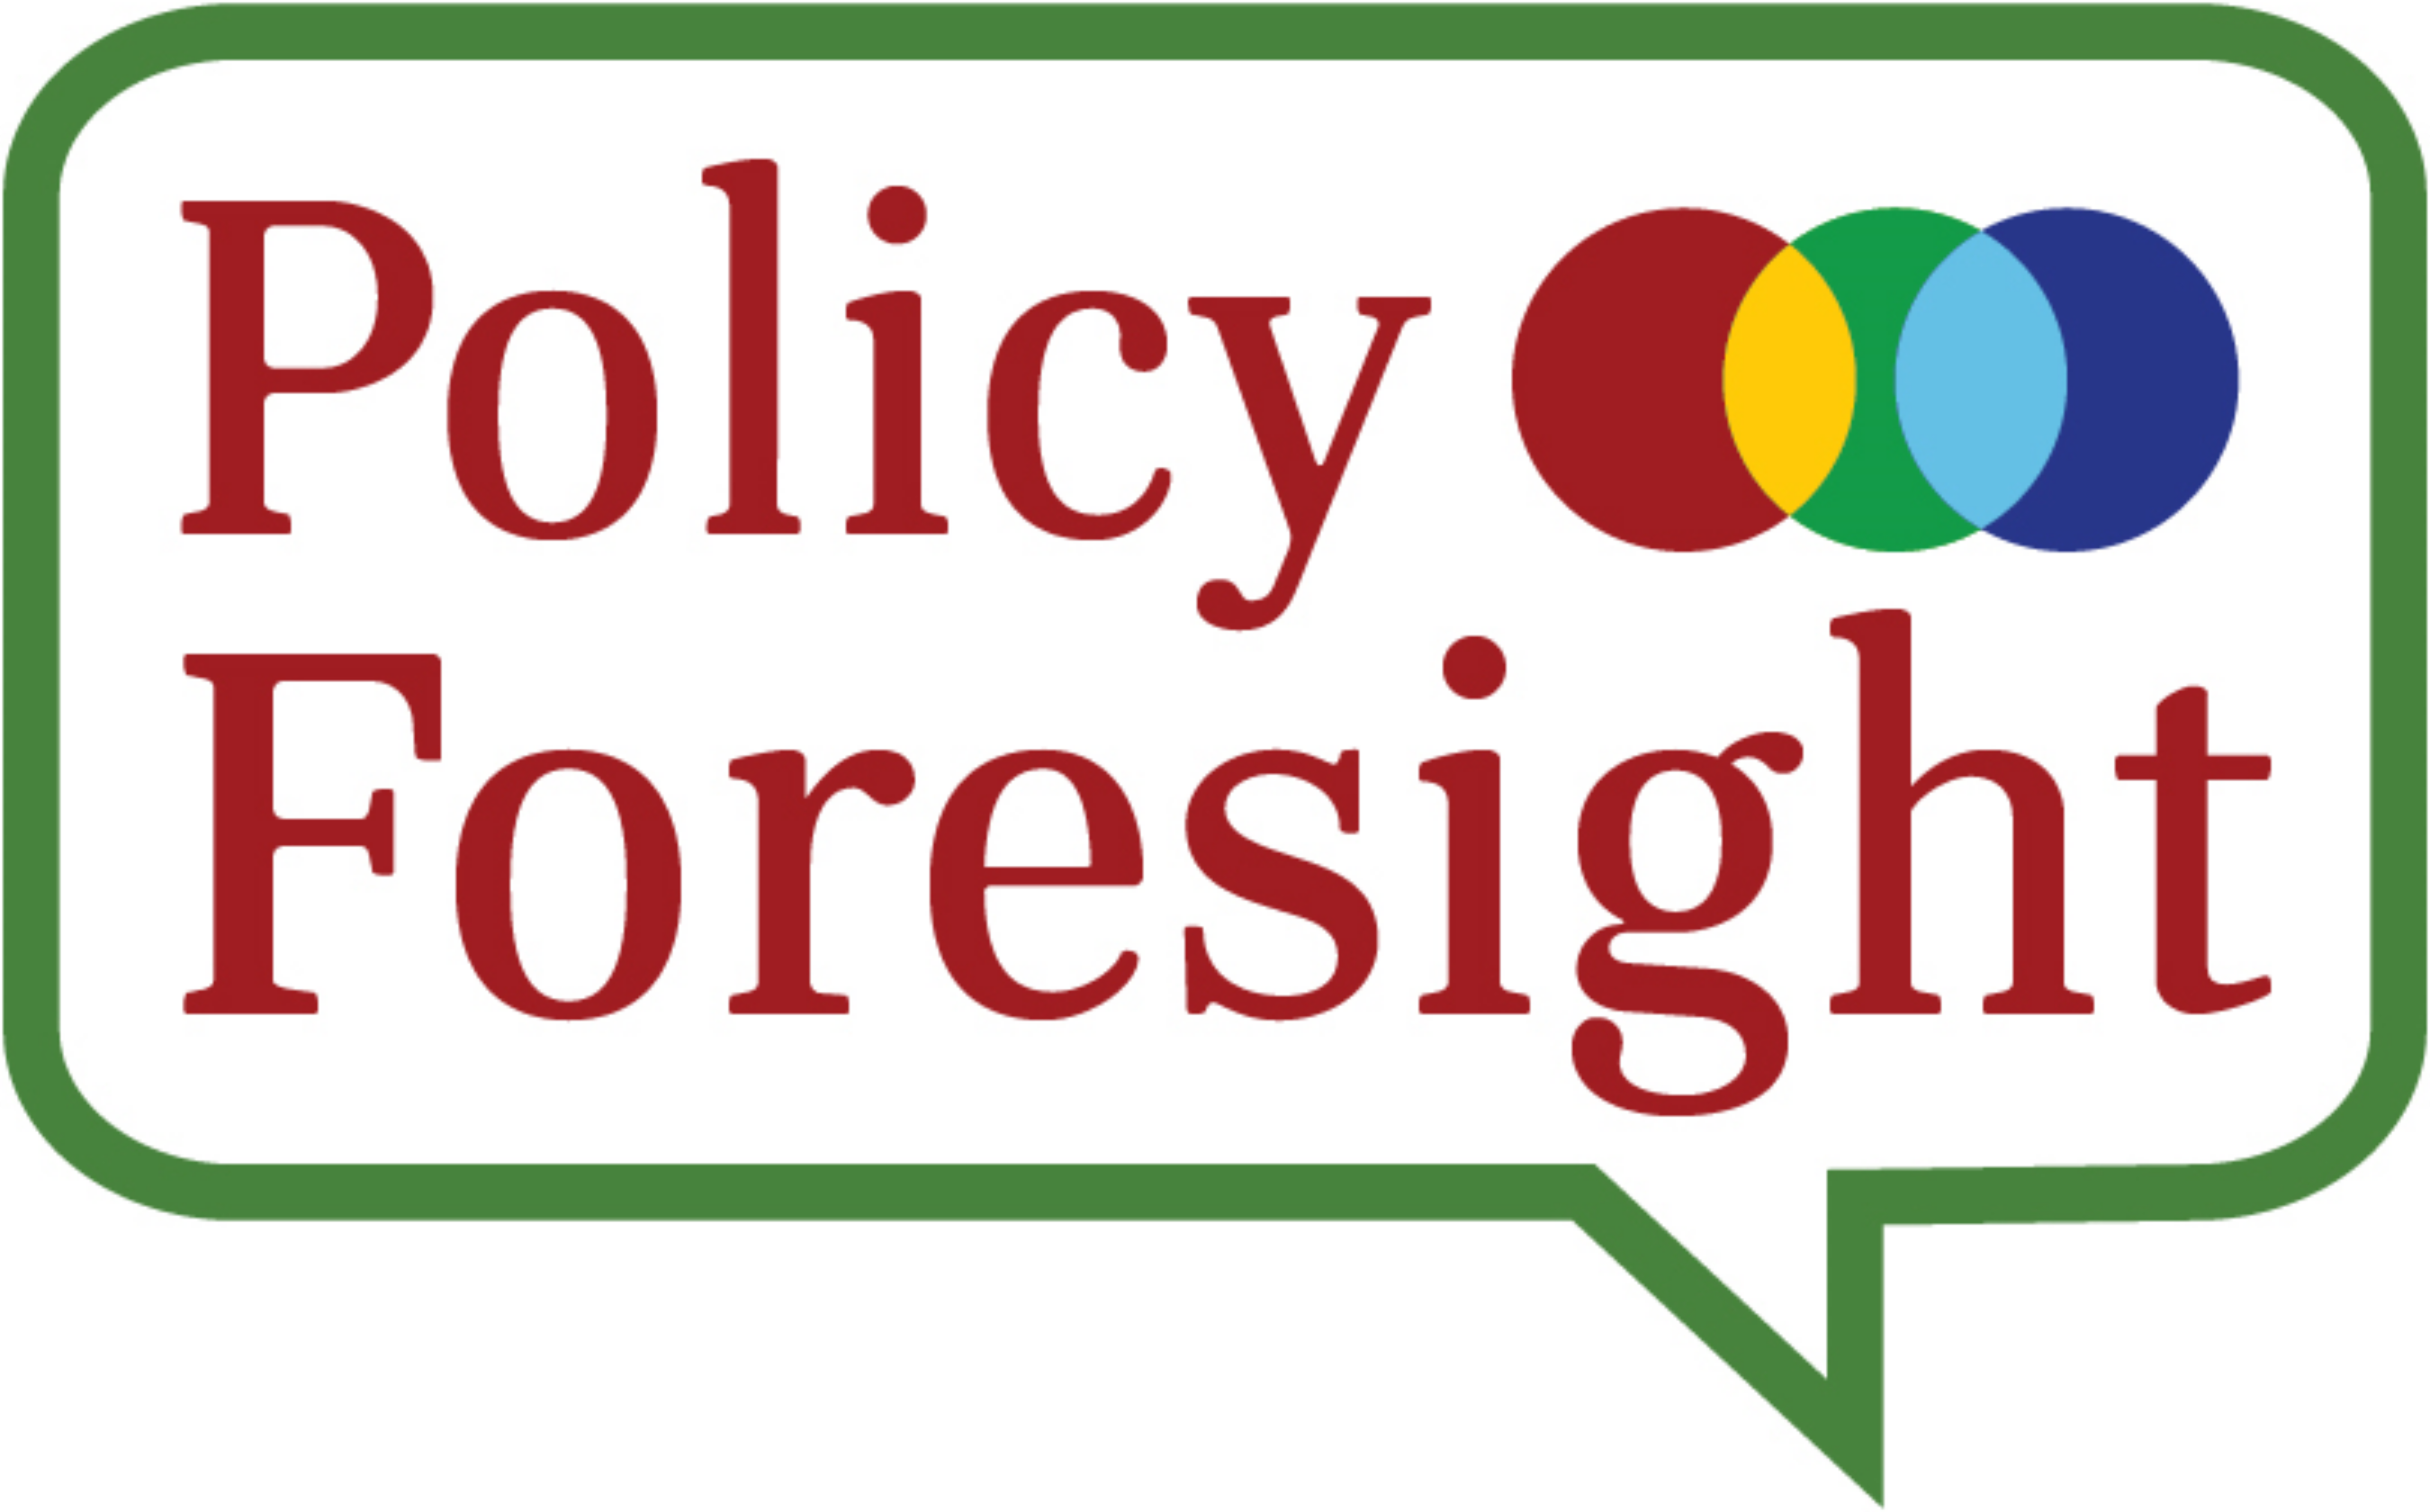 Policy Foresight